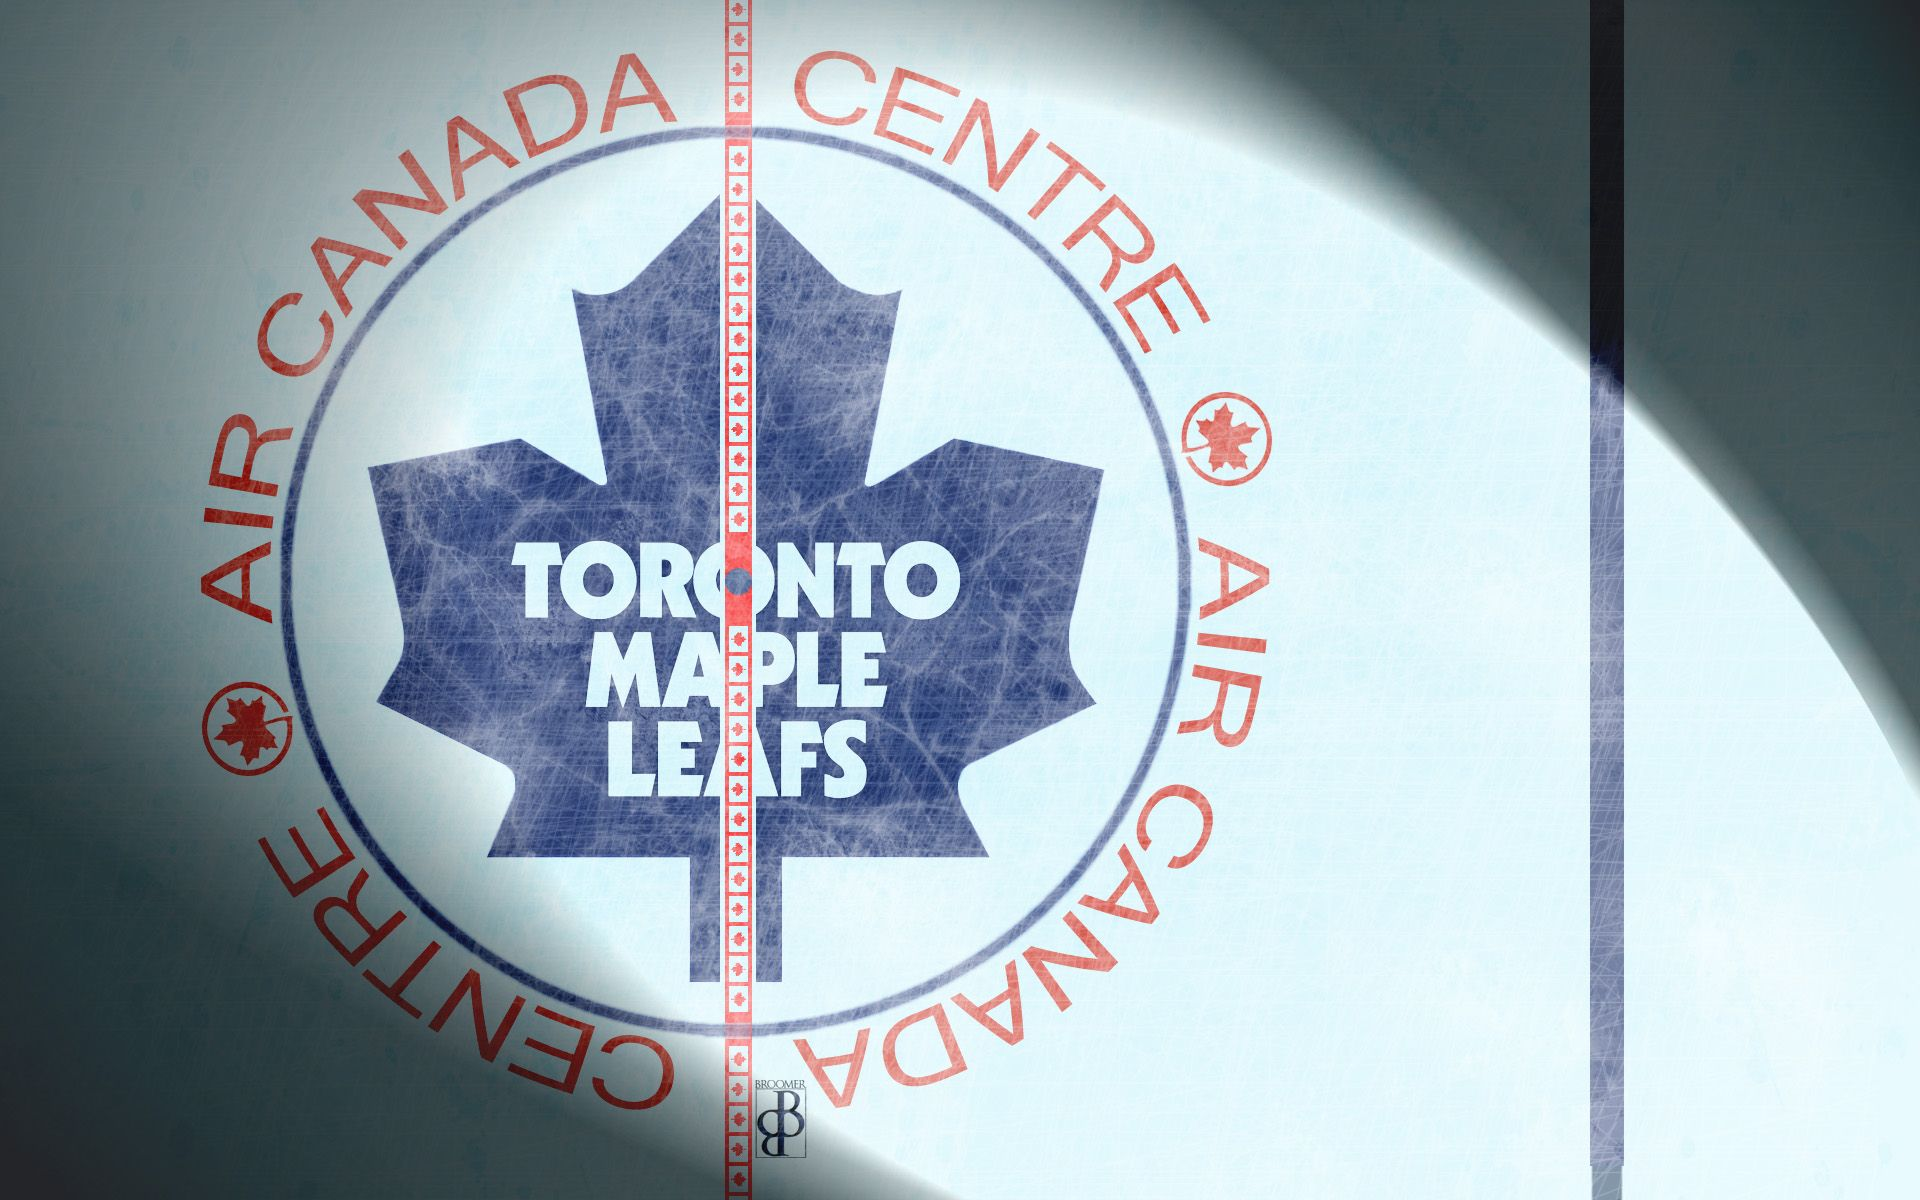 Toronto Maple Leafs Logo High Resolution Backgrounds